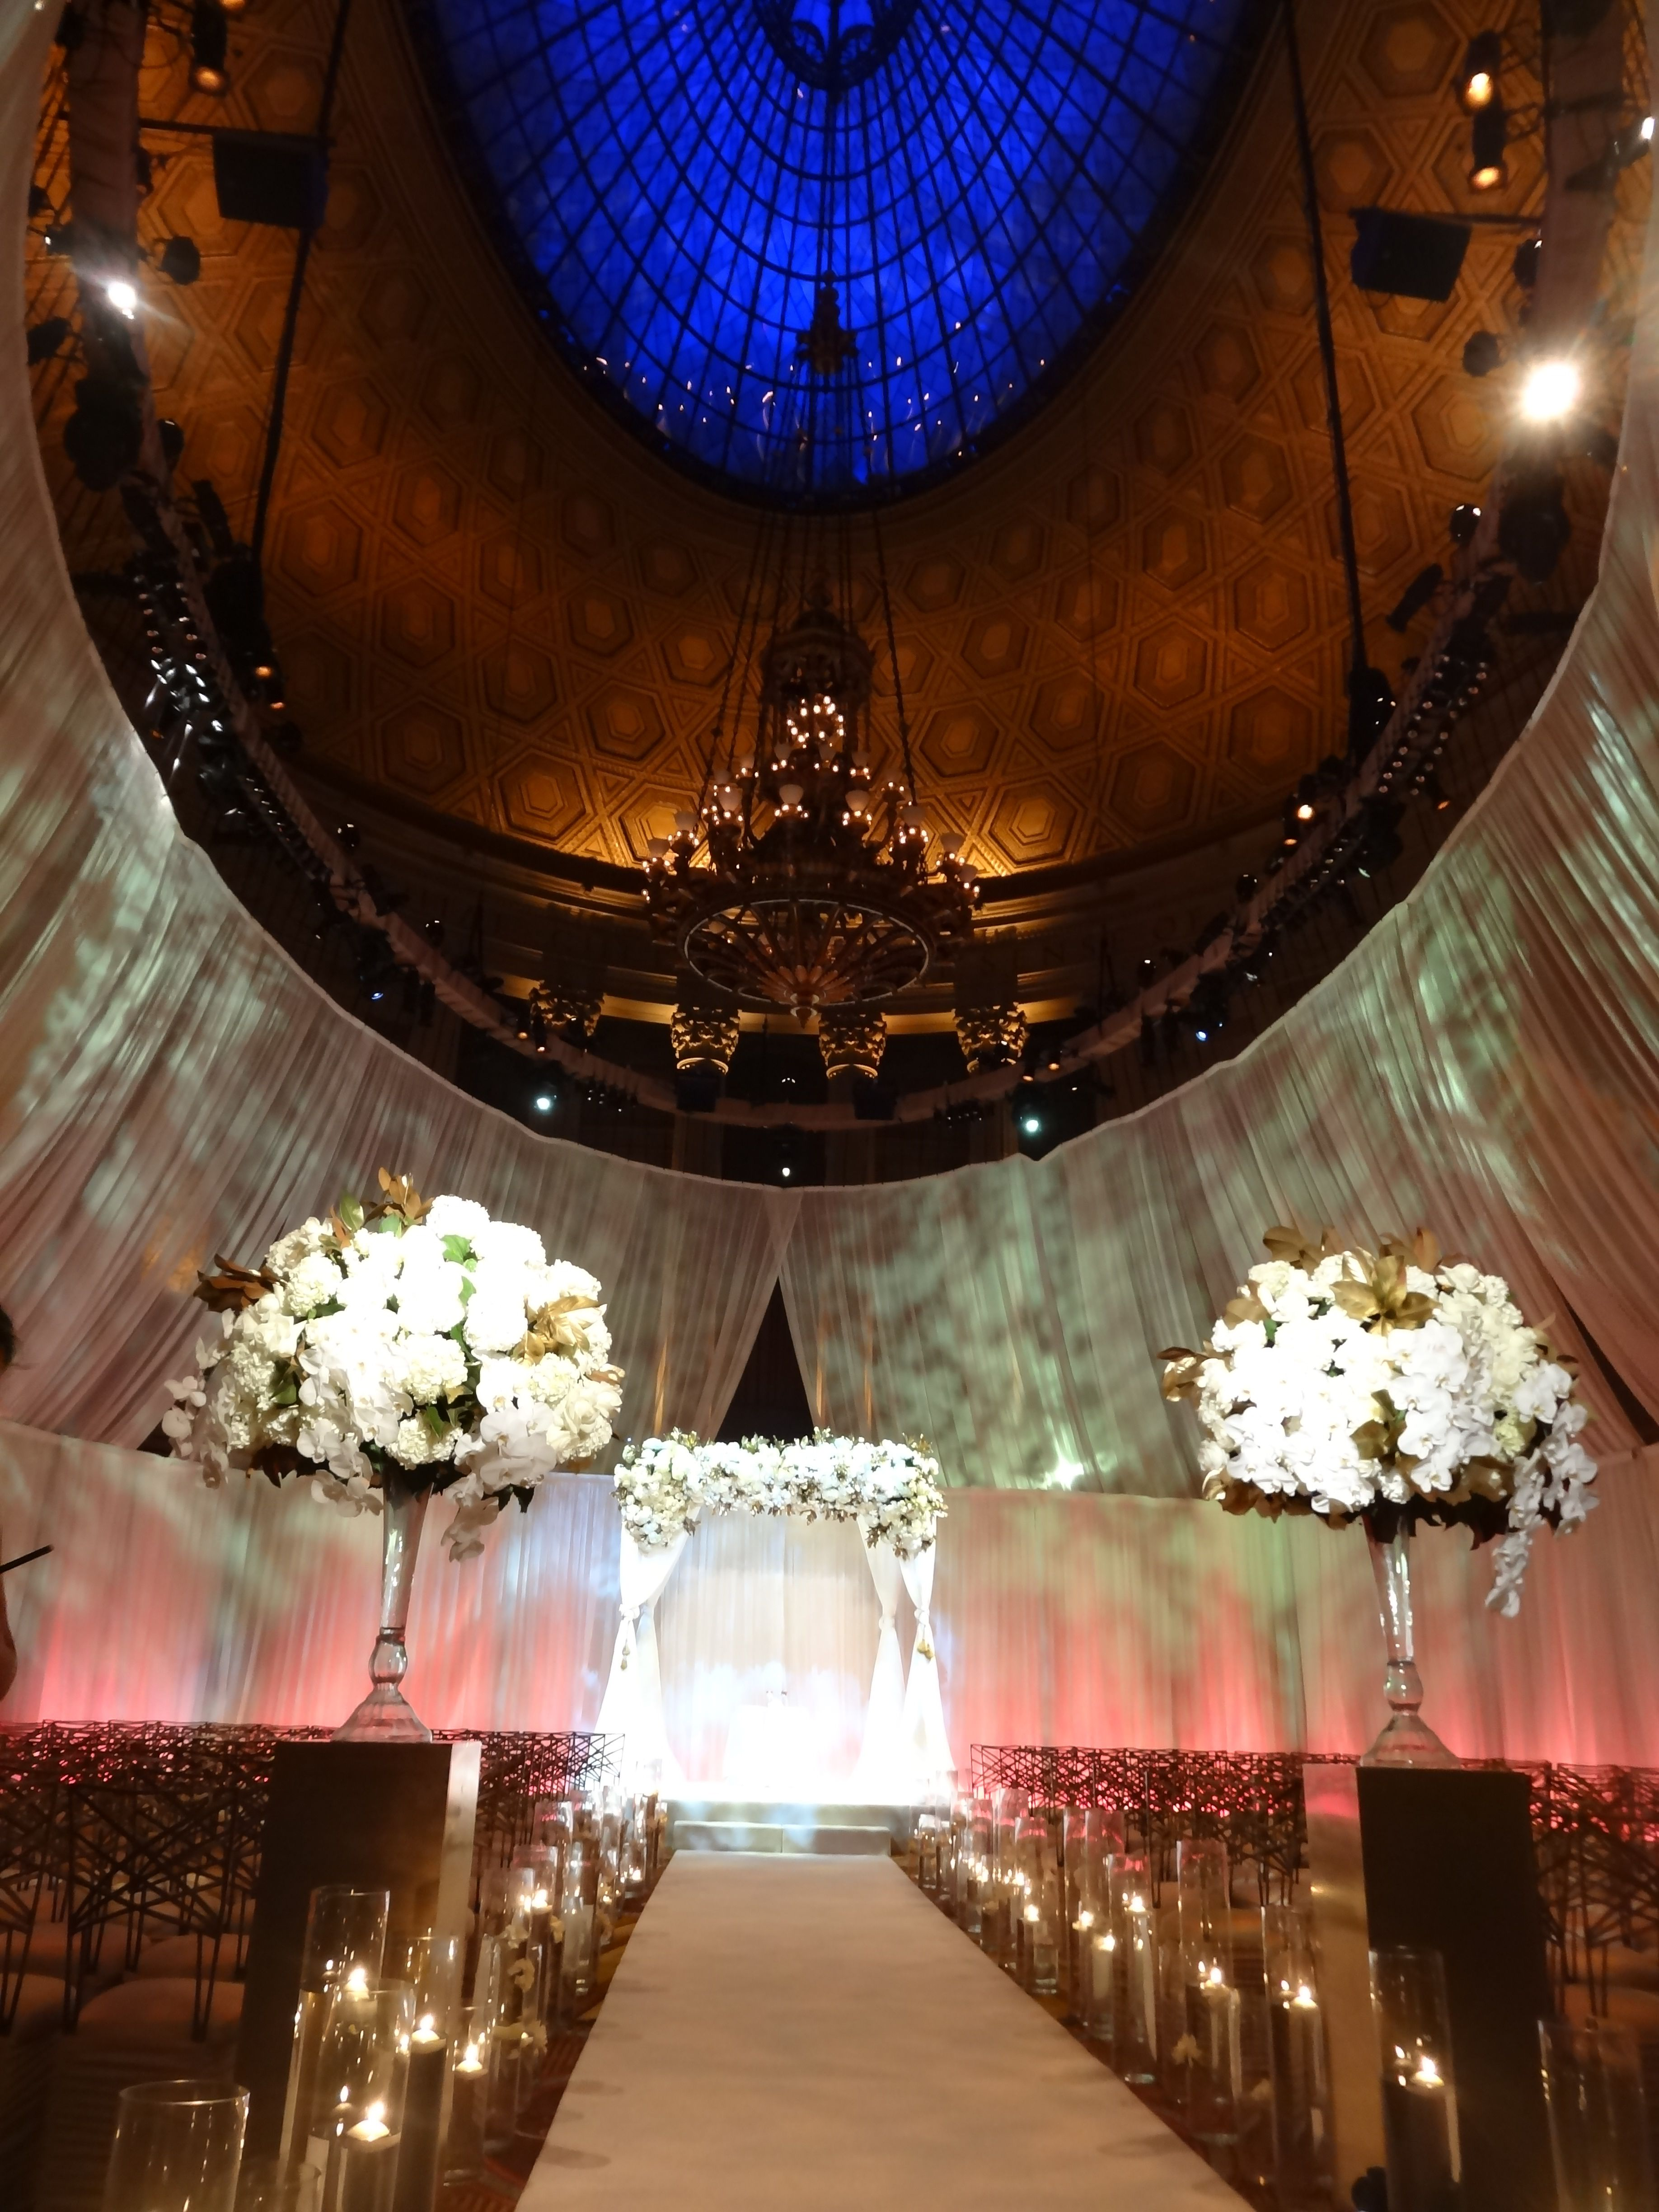 This is a beautiful NYC Chuppah wedding canopy for a Jewish wedding ceremony in landmark building & This is a beautiful NYC Chuppah wedding canopy for a Jewish ...